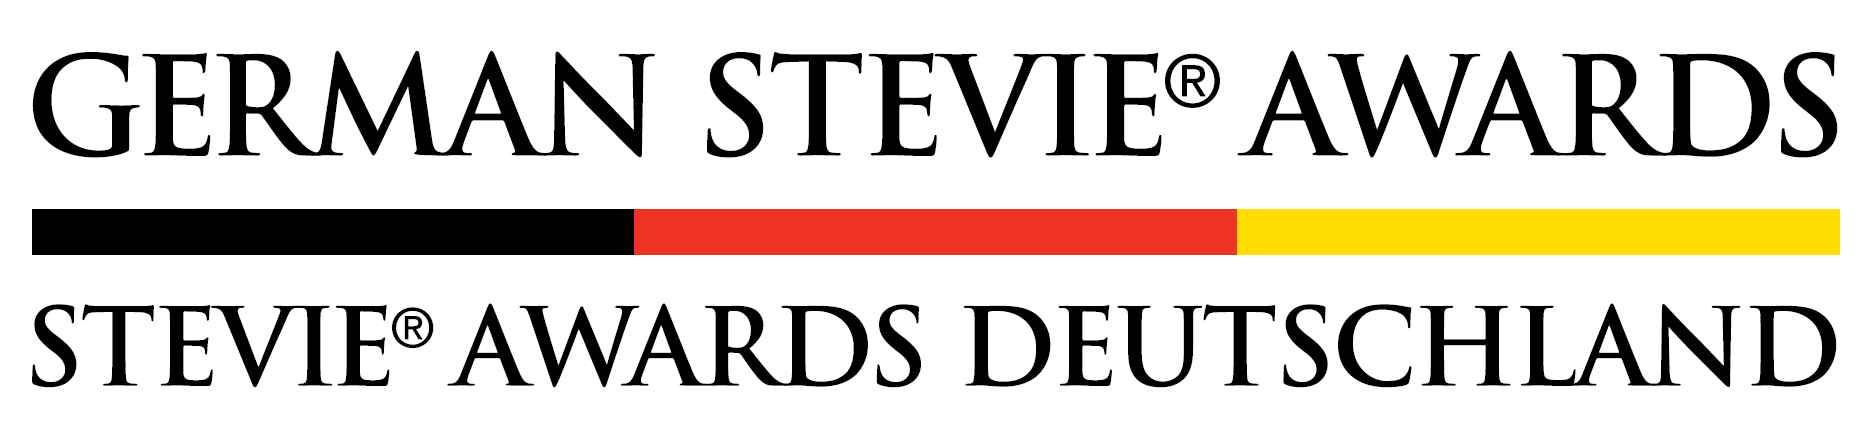 German Stevie Award Logo